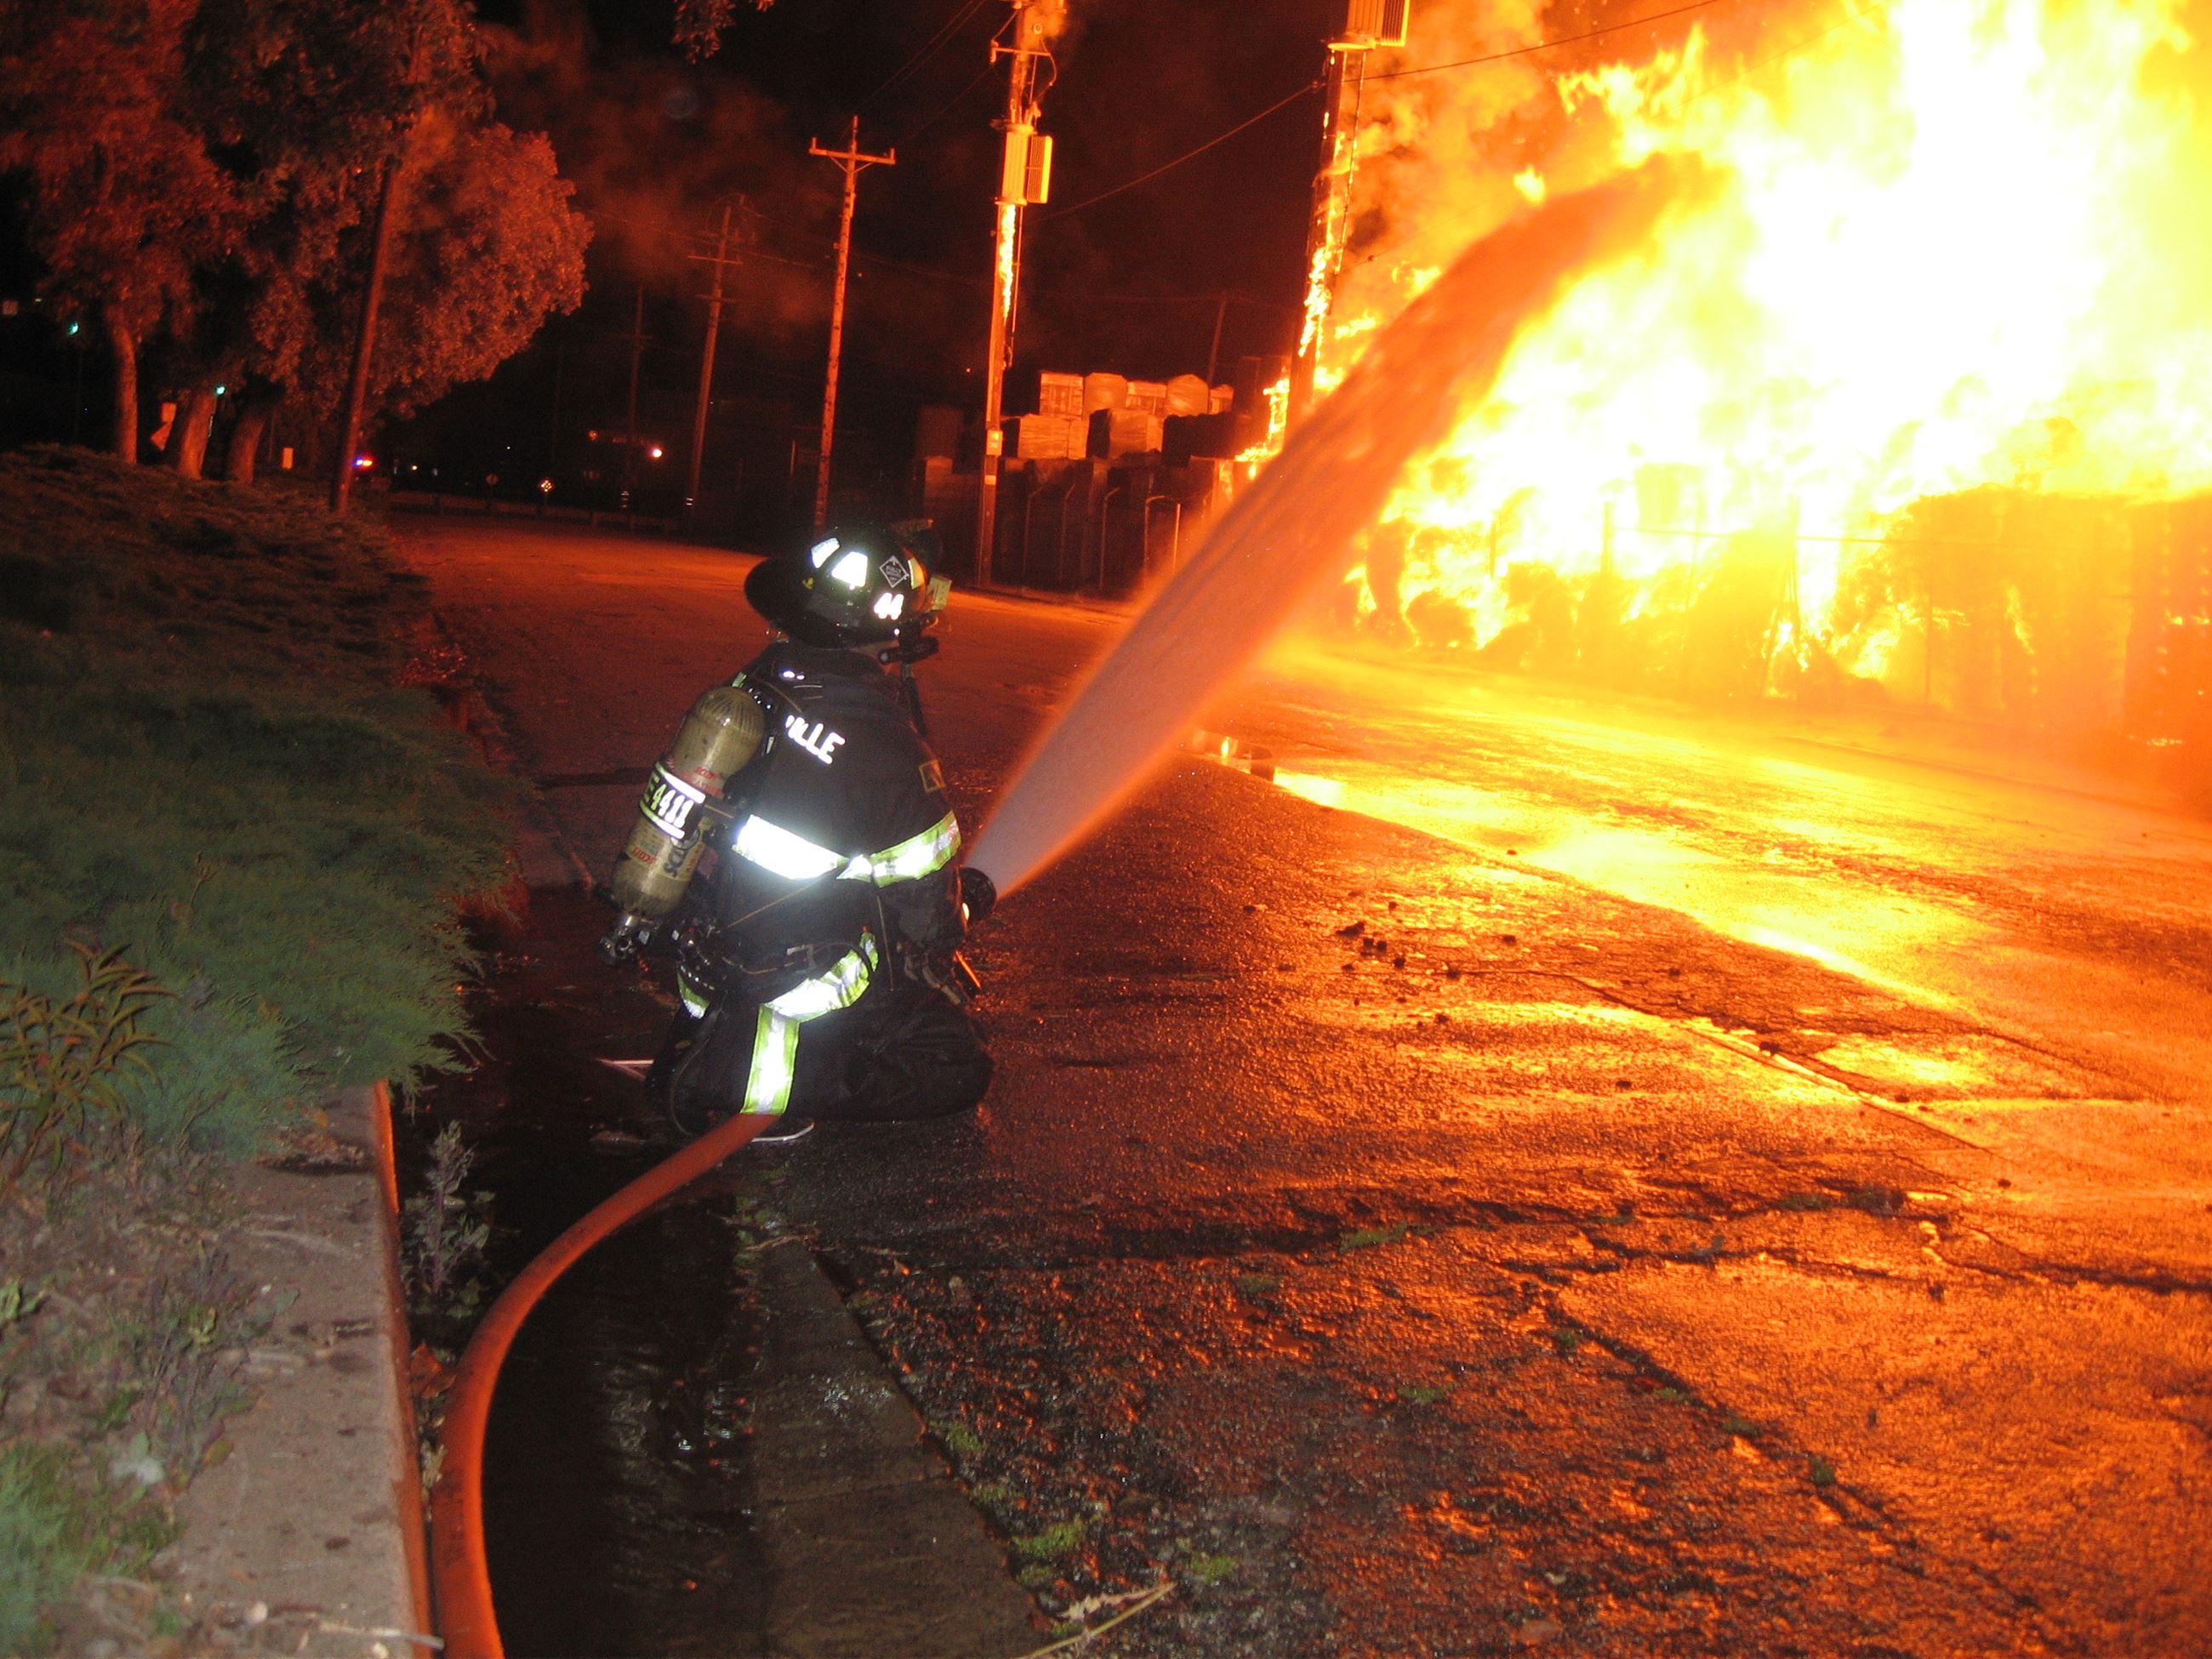 Firefighter with hose putting out a large fire at night